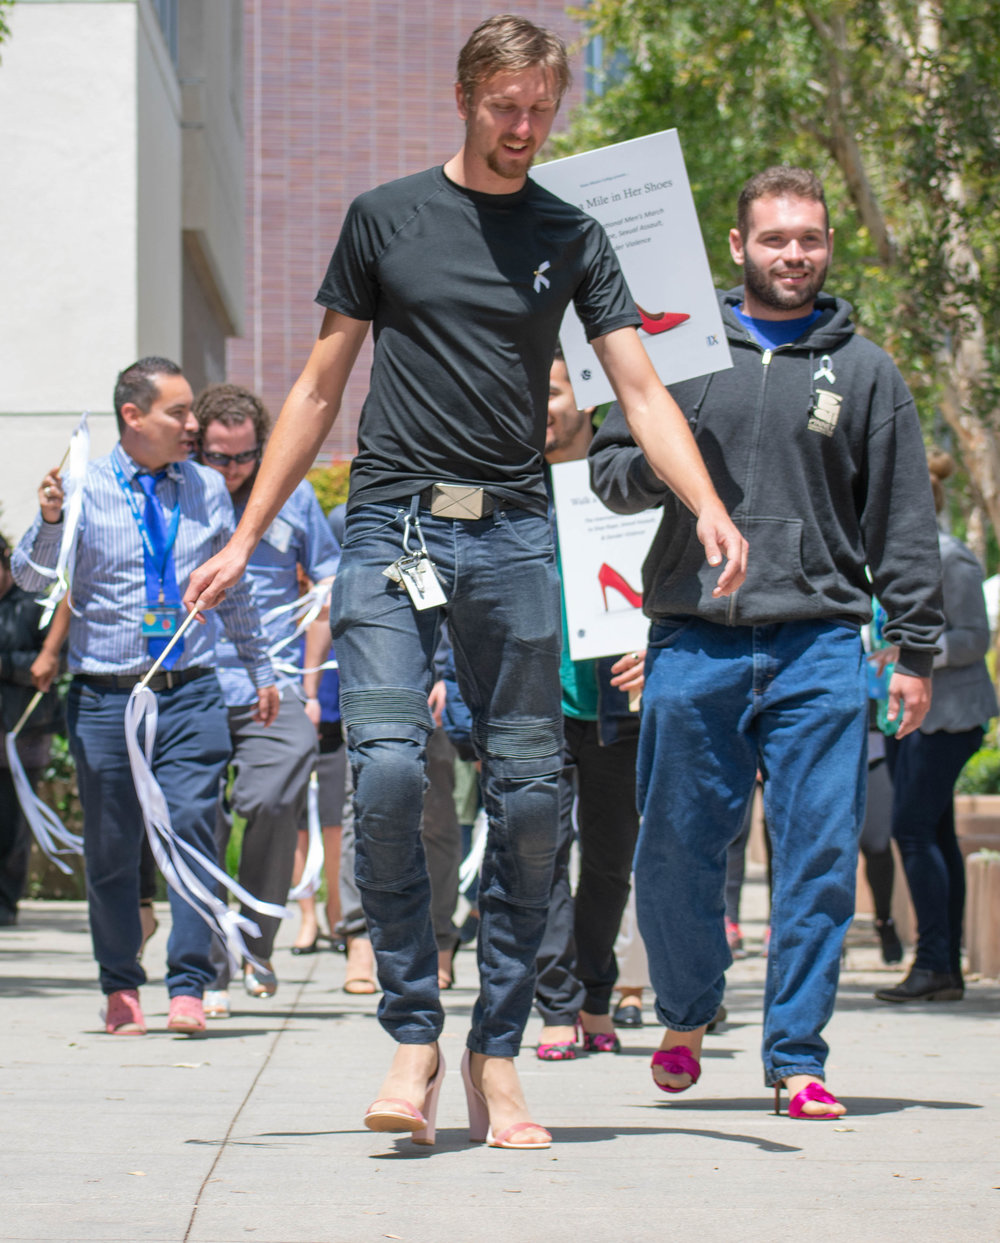 Tanner Jordan walks in front during a march for an event to show solidarity to women at Santa Monica College on Tuesday, April 24 in Santa Monica, California. The day was aimed towards men, who were encouraged to take a pledge about speaking up to sexual abuse and later were given high heels to walk around the campus. (Ethan Lauren/Corsair Photo)